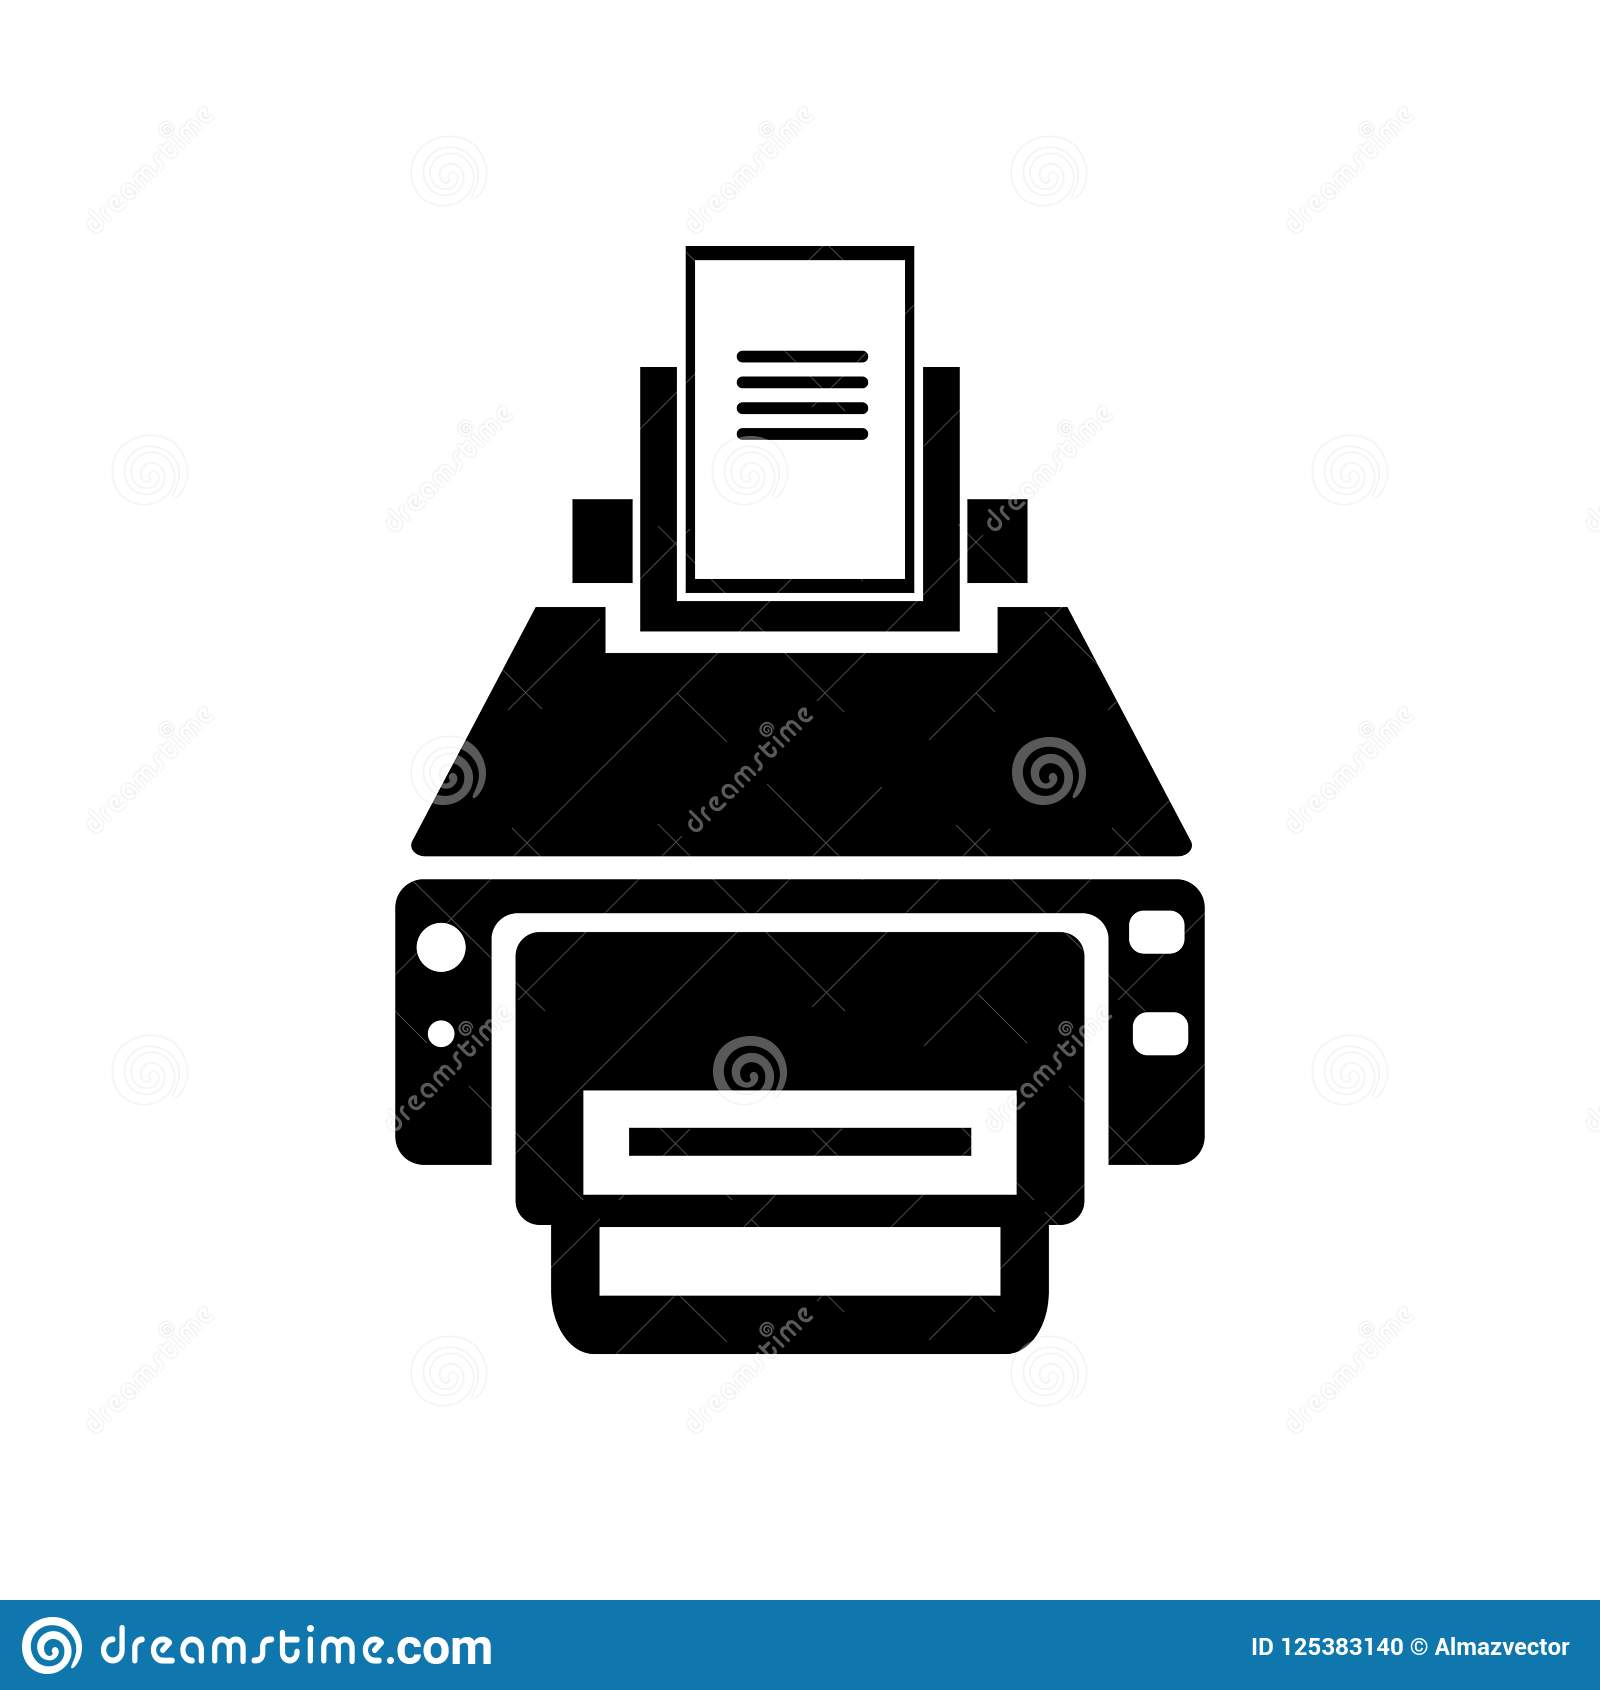 ПЕЧАТЬ ПРИНТЕР Printer With Print And Paper Sheets Icon Vector Sign And Symbol